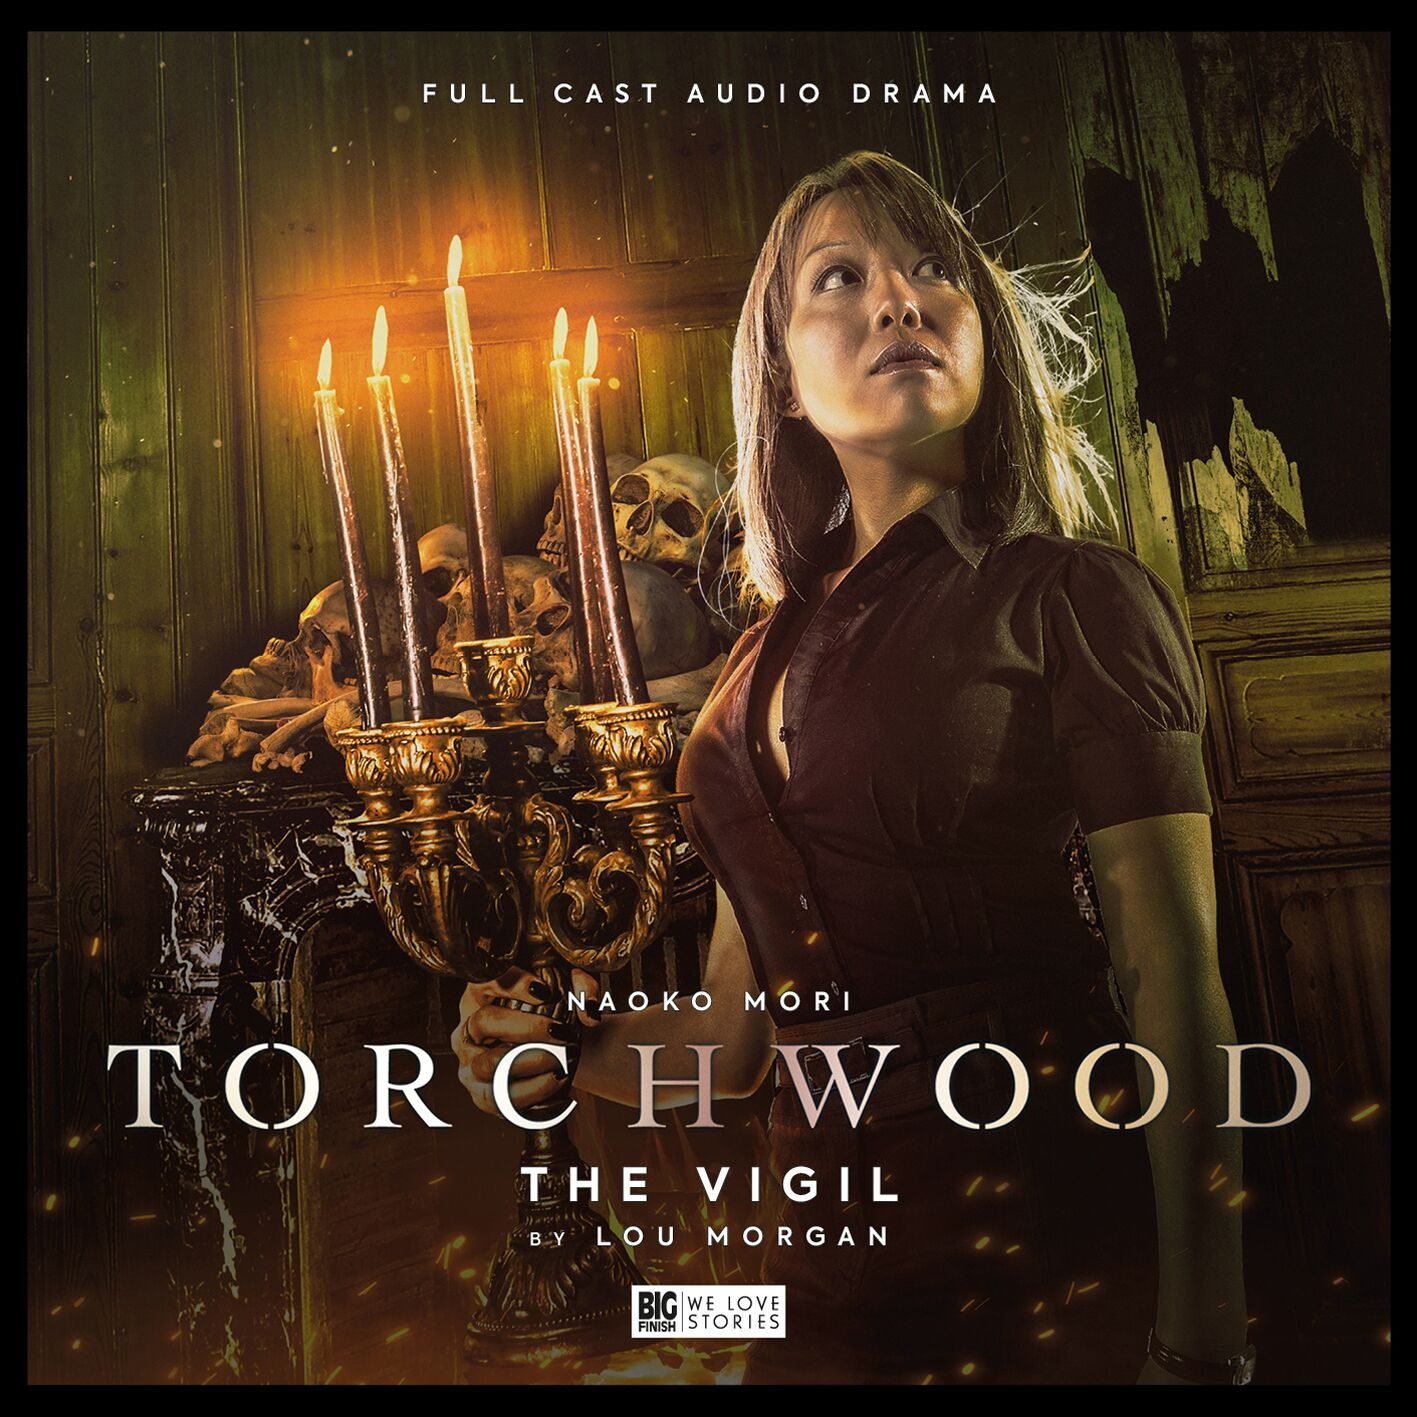 Torchwood review: The Vigil explores the death and life of a rather unlikable Torchwood member